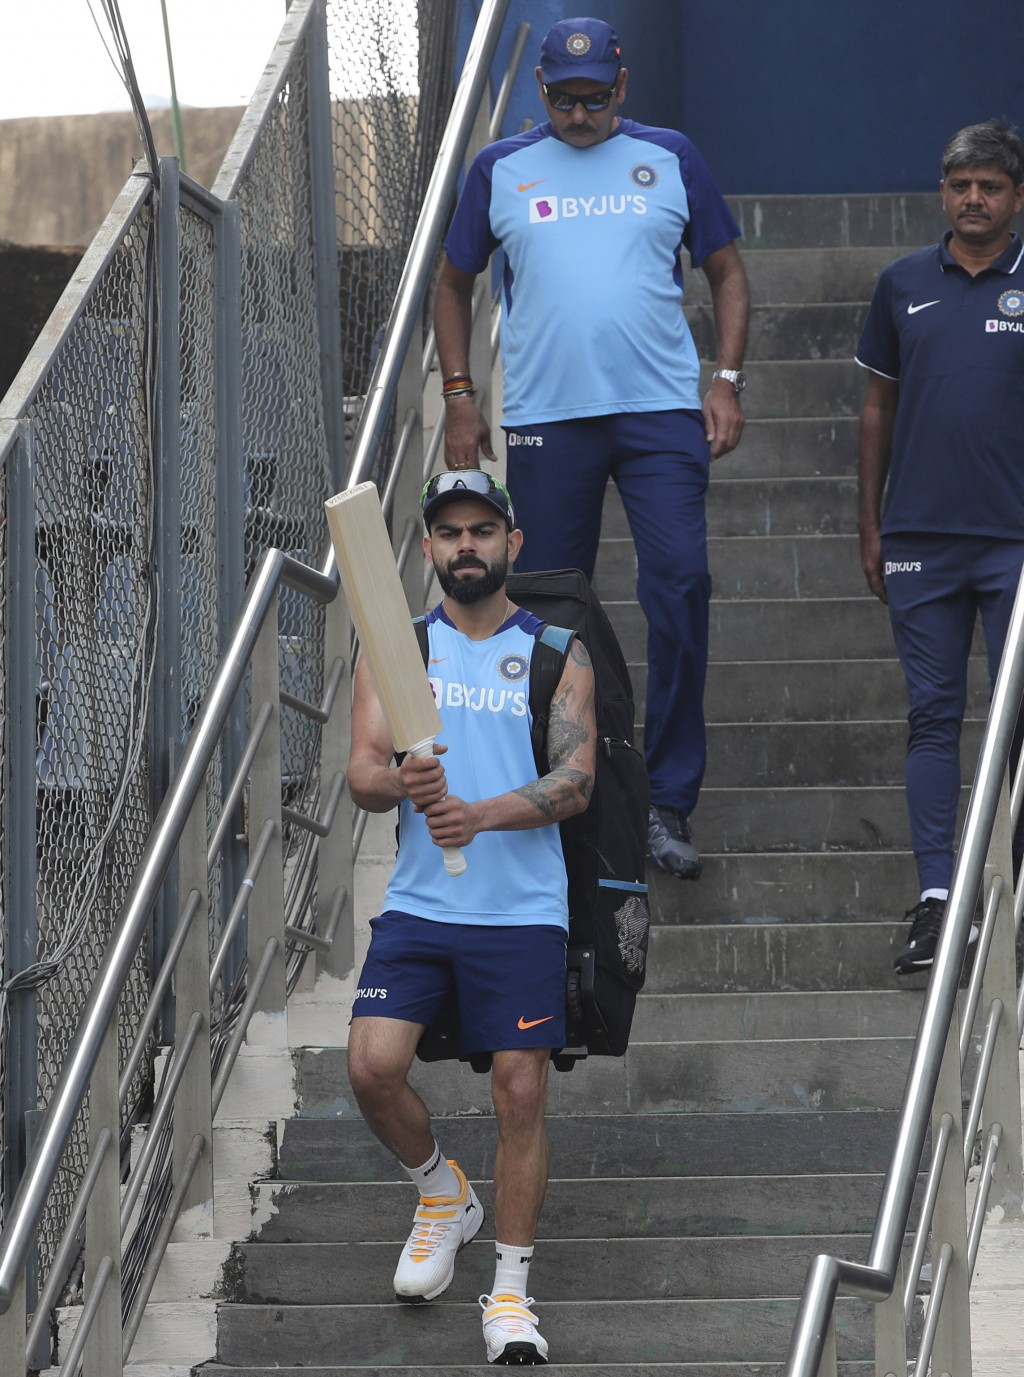 India's cricket captain Virat Kohli along with coach Ravi Shastri, behind, arrives for a training session ahead of their first one-day international c...